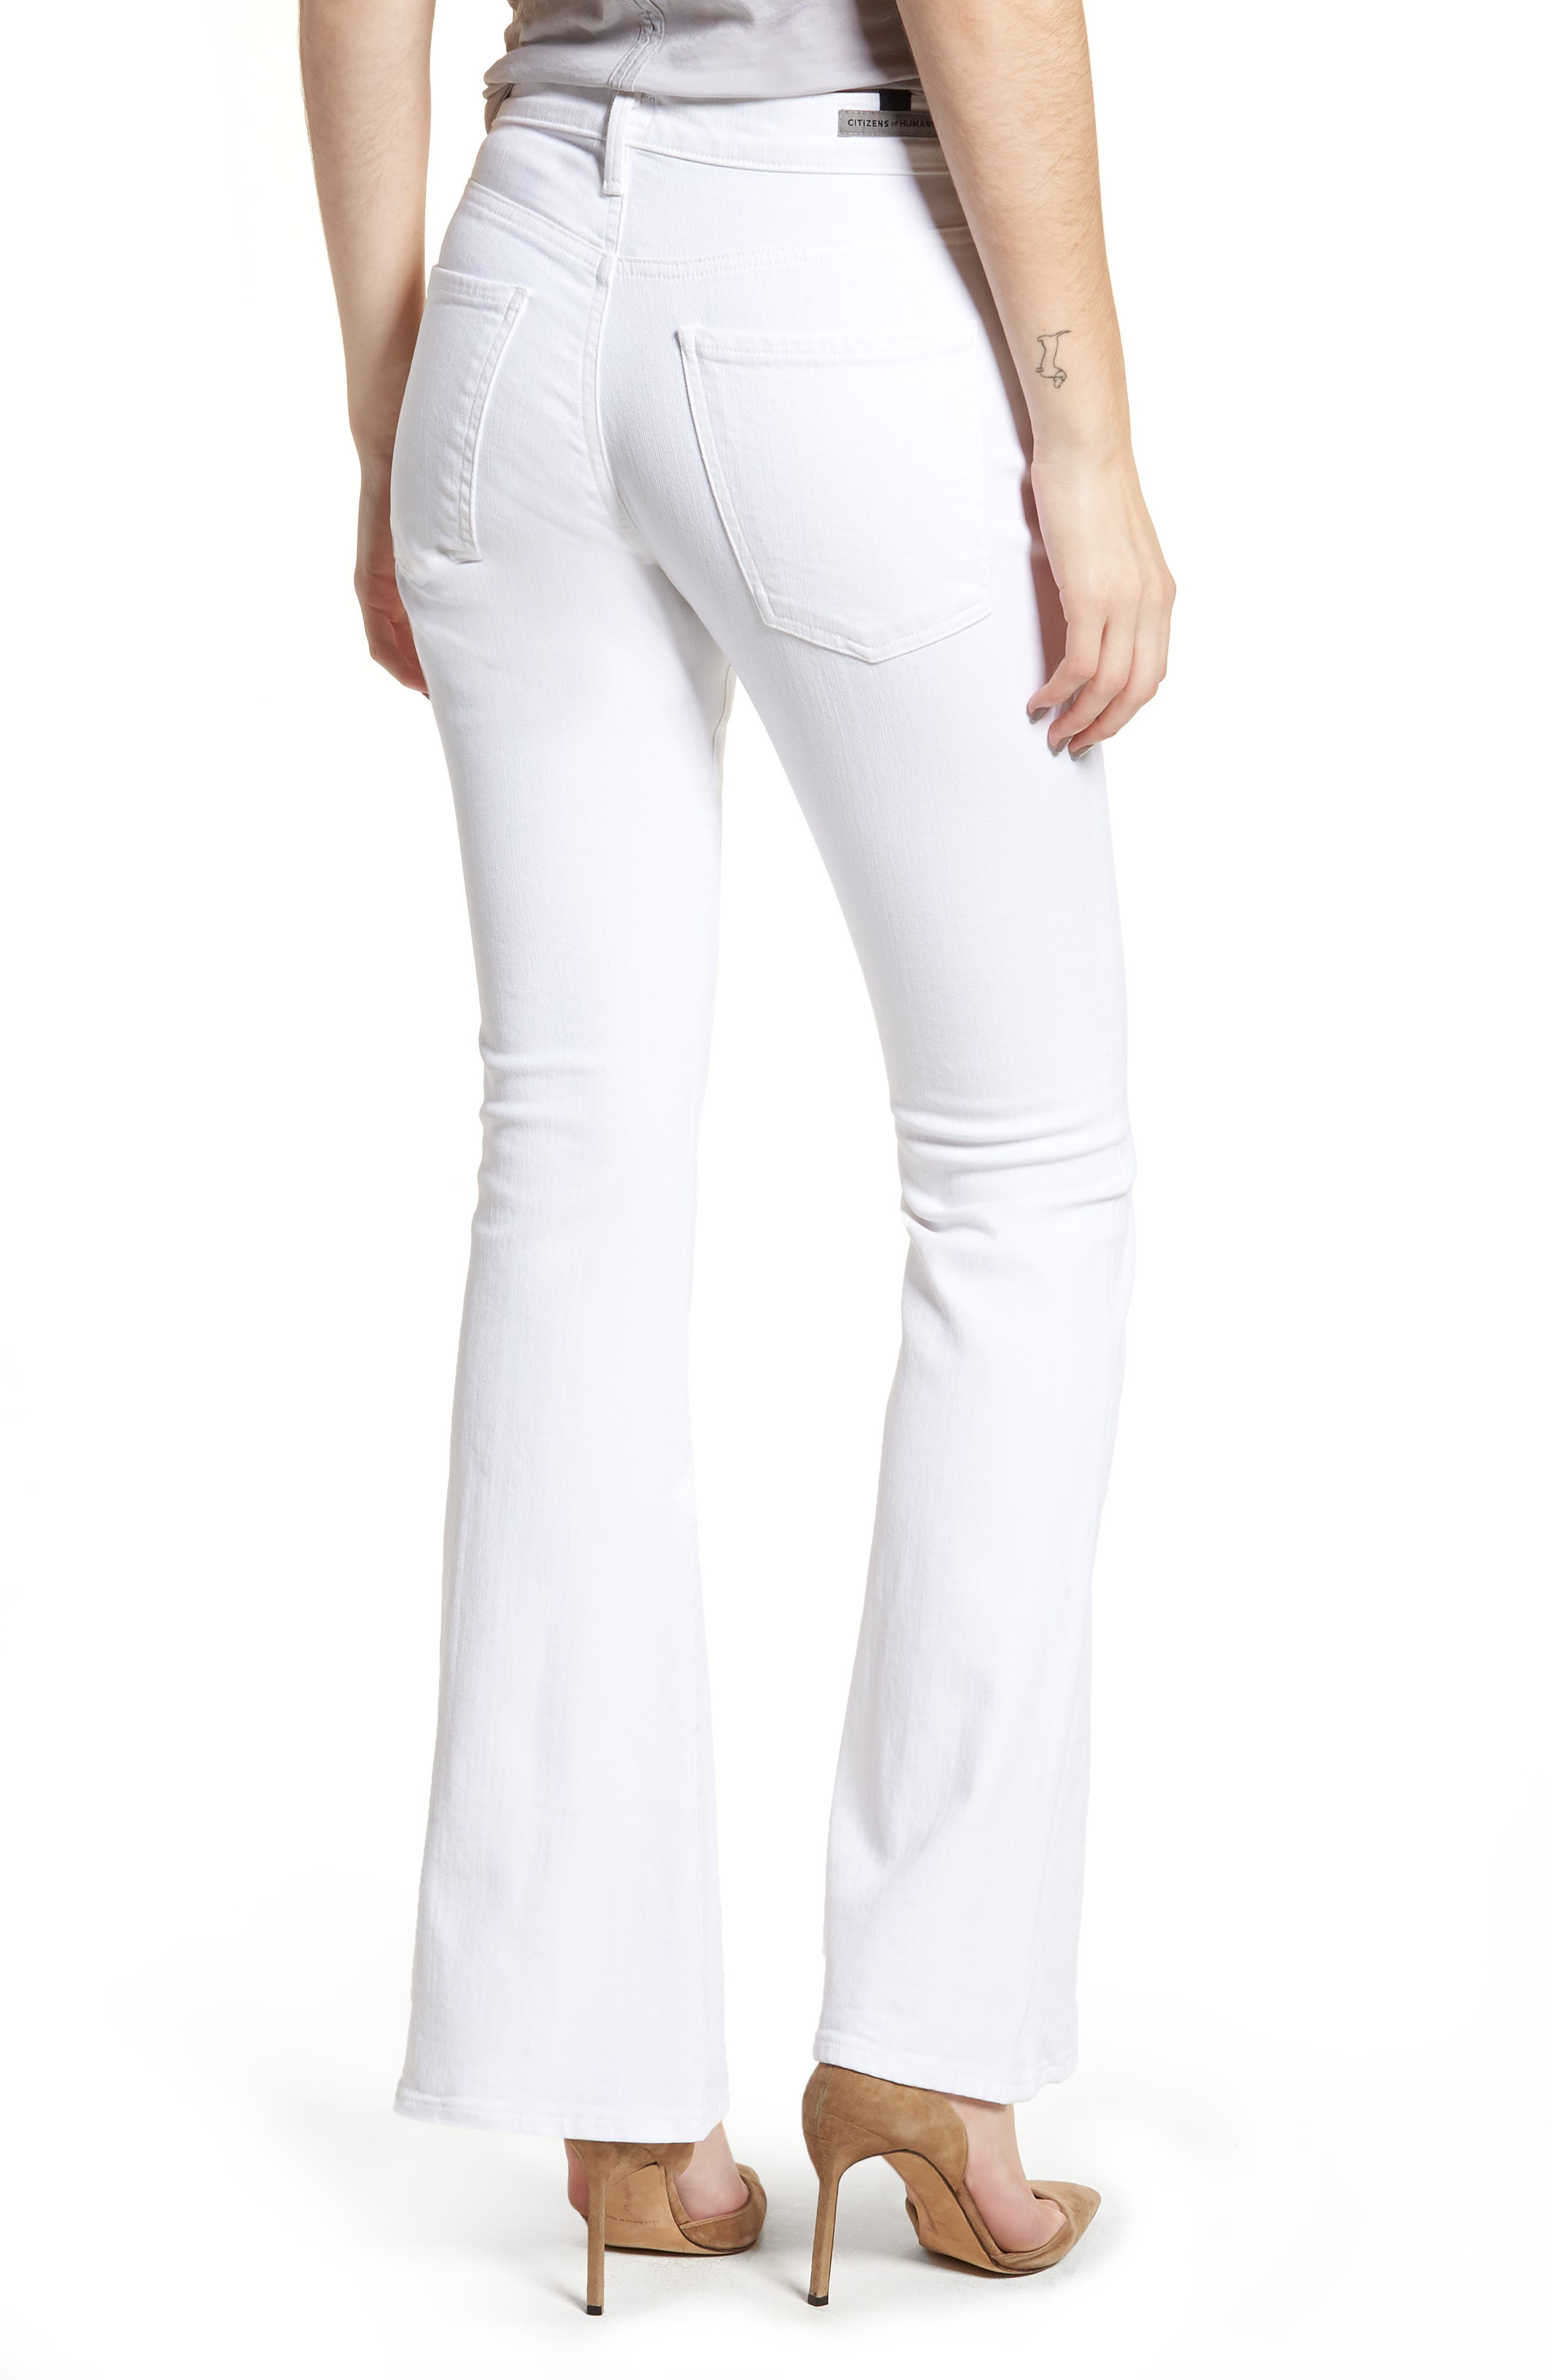 Fleetwood Flare Jeans,                             Alternate thumbnail 2, color,                             104